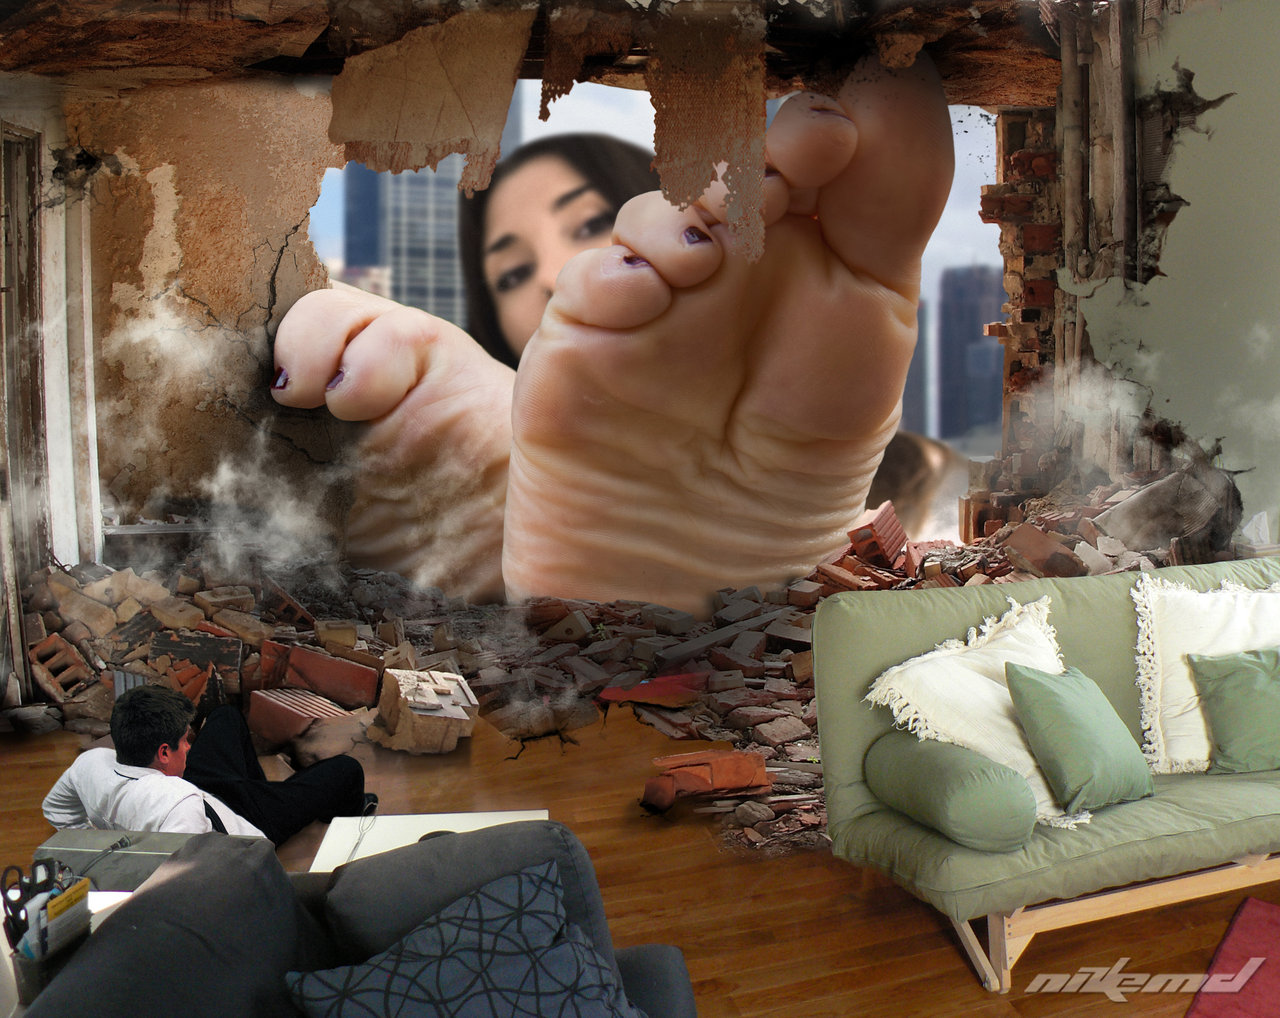 156406 - apartment barefoot collage damage destruction giantess hole looking_at_viewer looking_inside man nikemd pedicure sofa soles